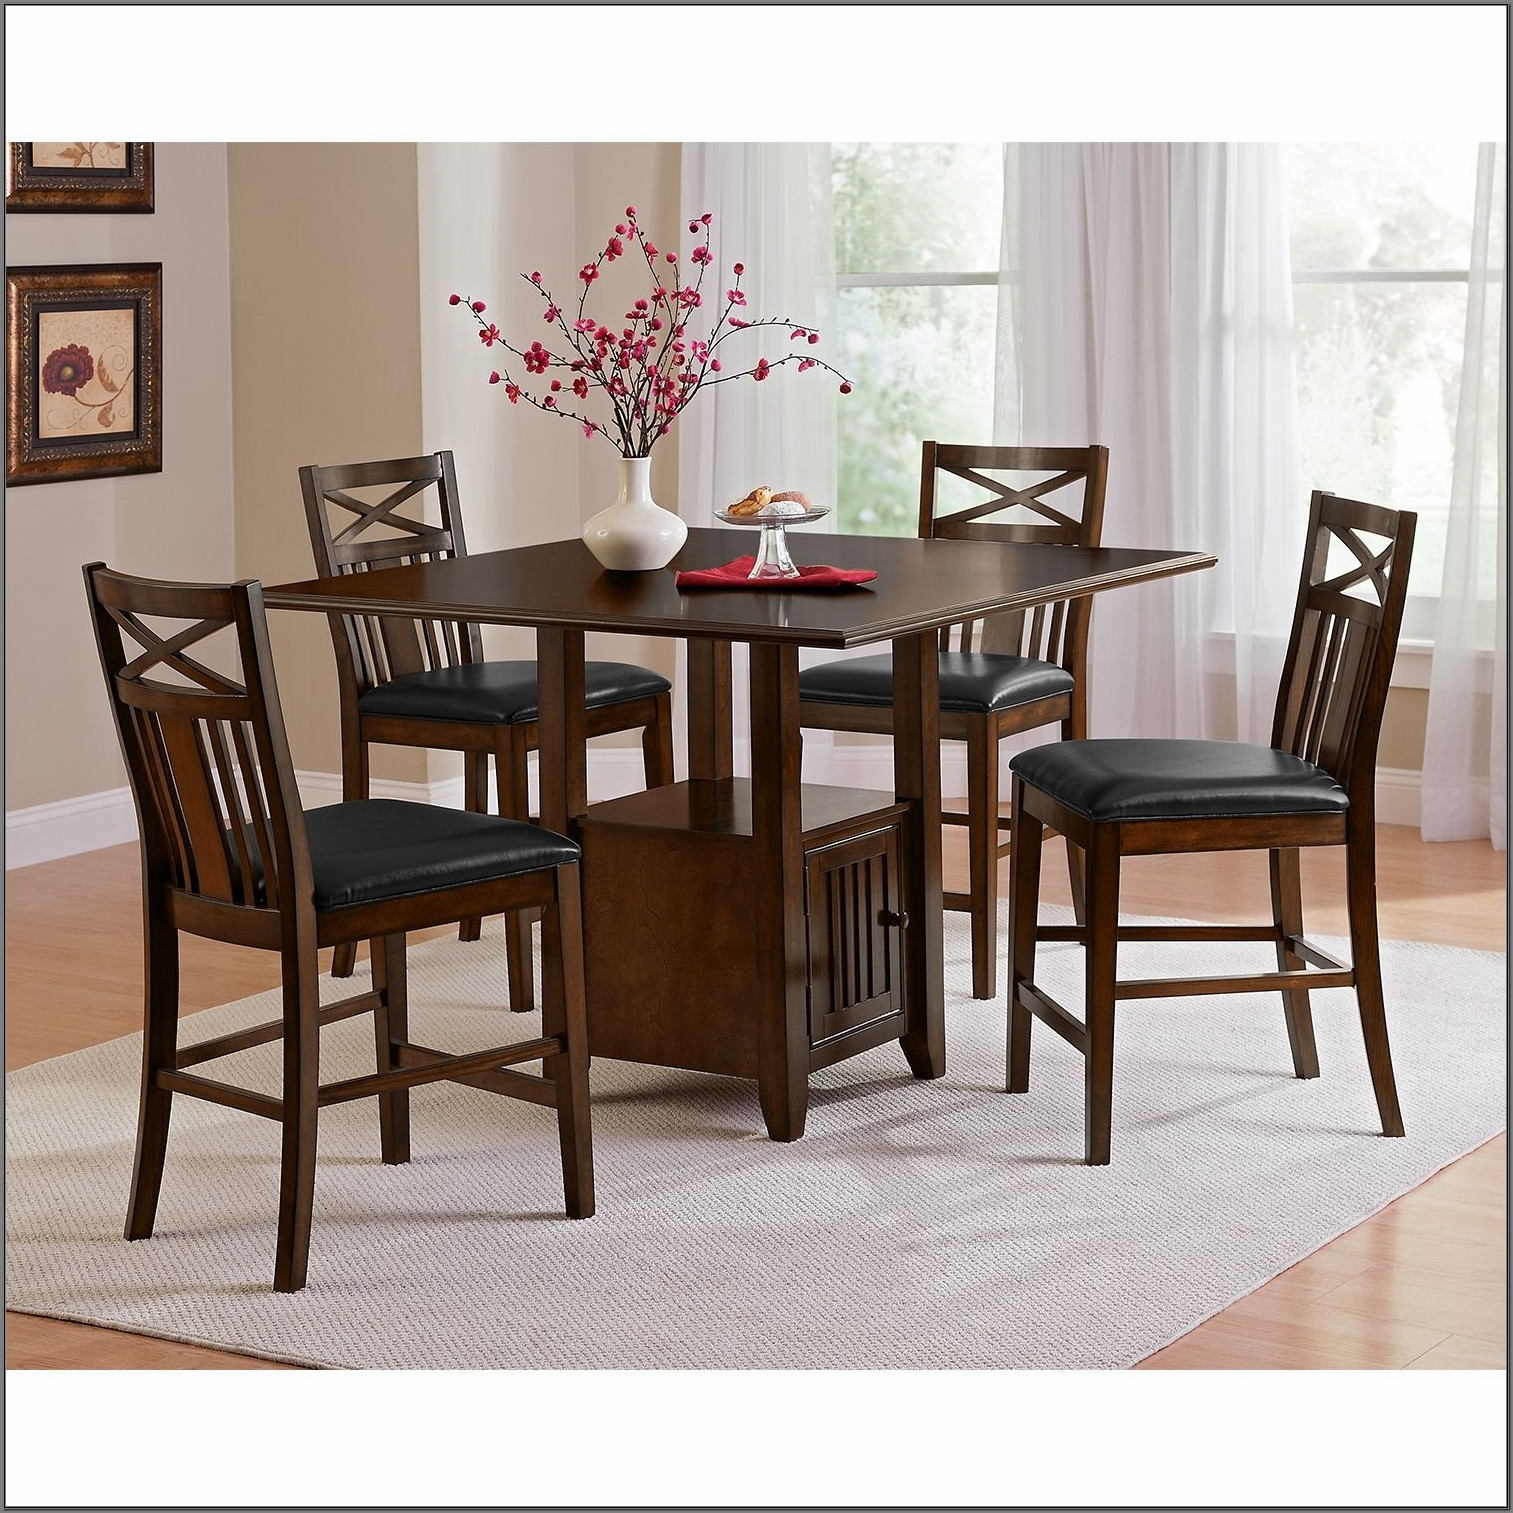 American Signature Furniture Dining Room